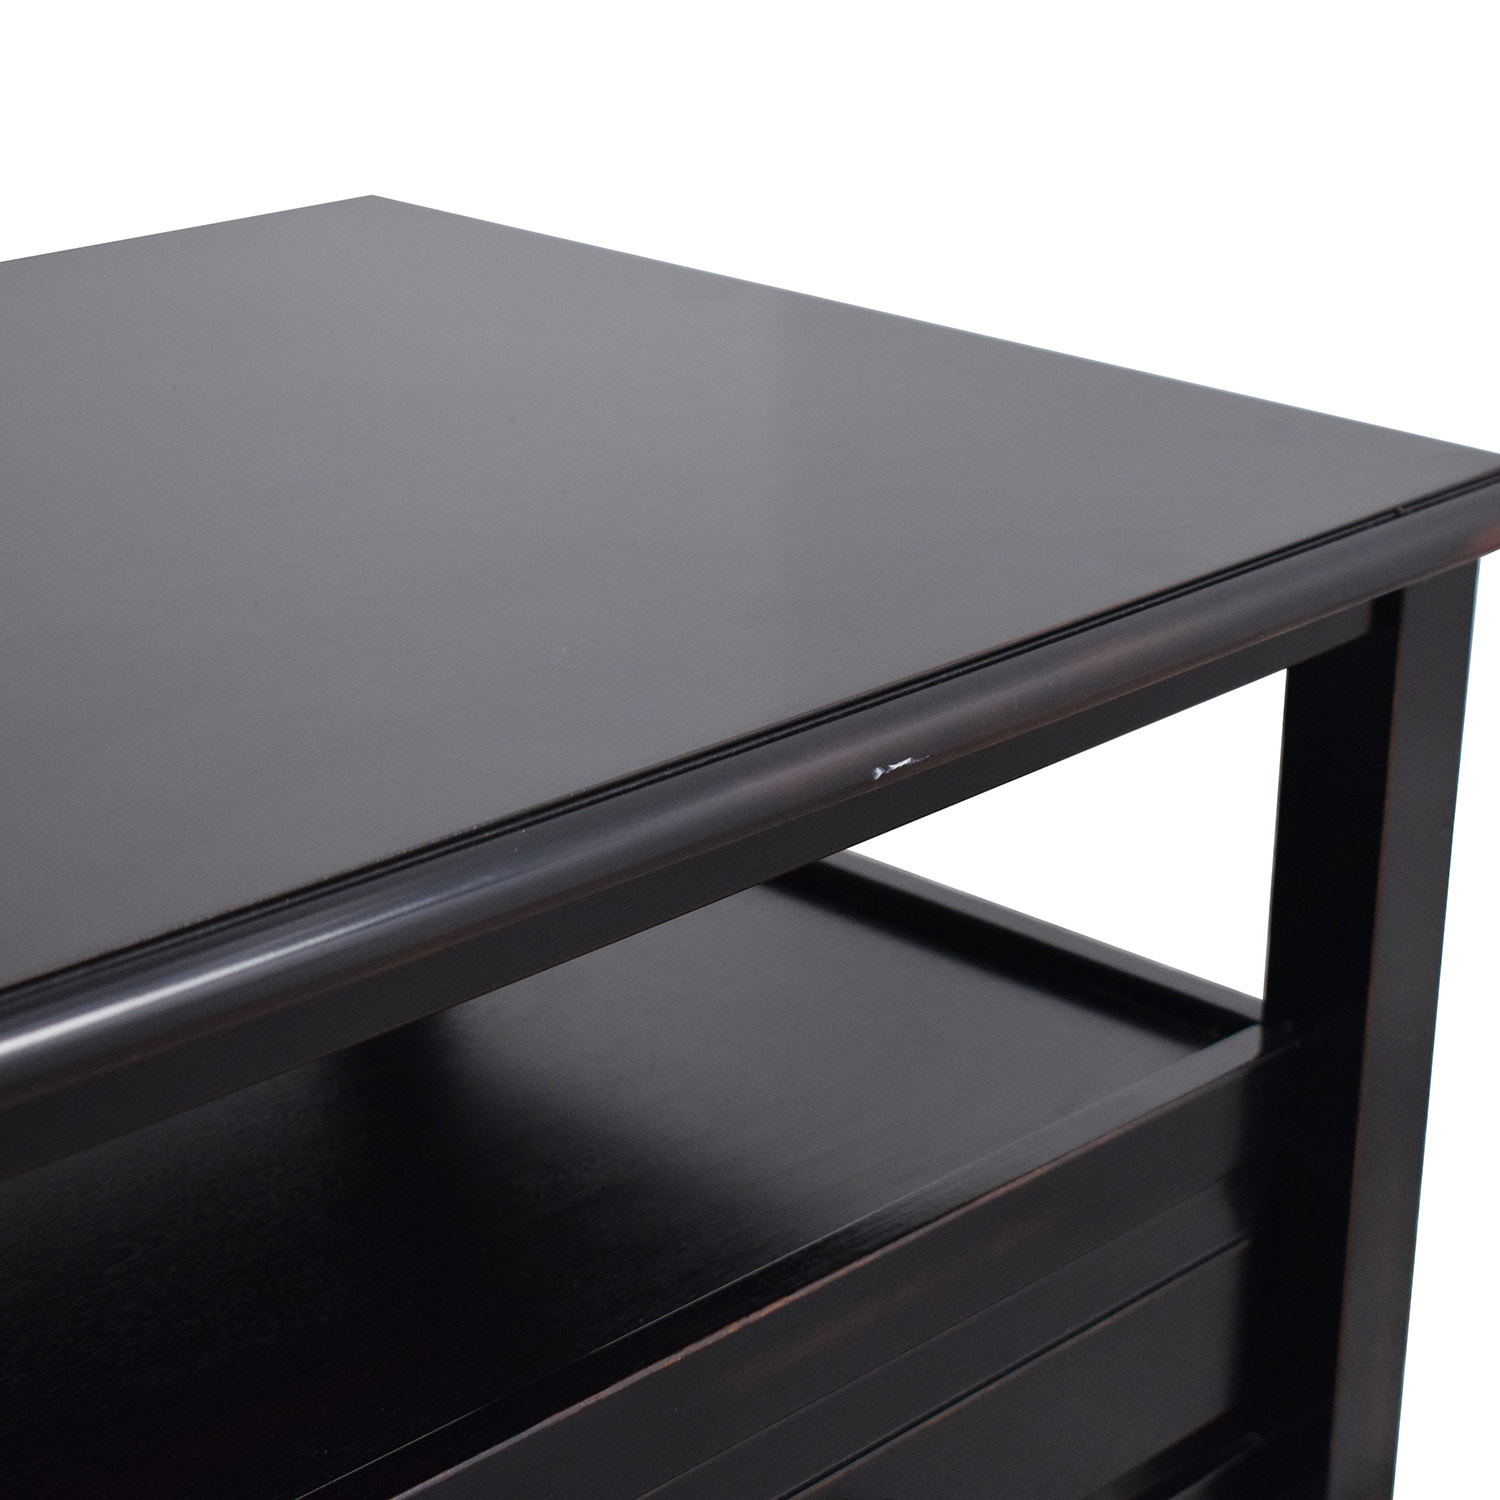 Pier 1 Pier 1 Coffee Table used